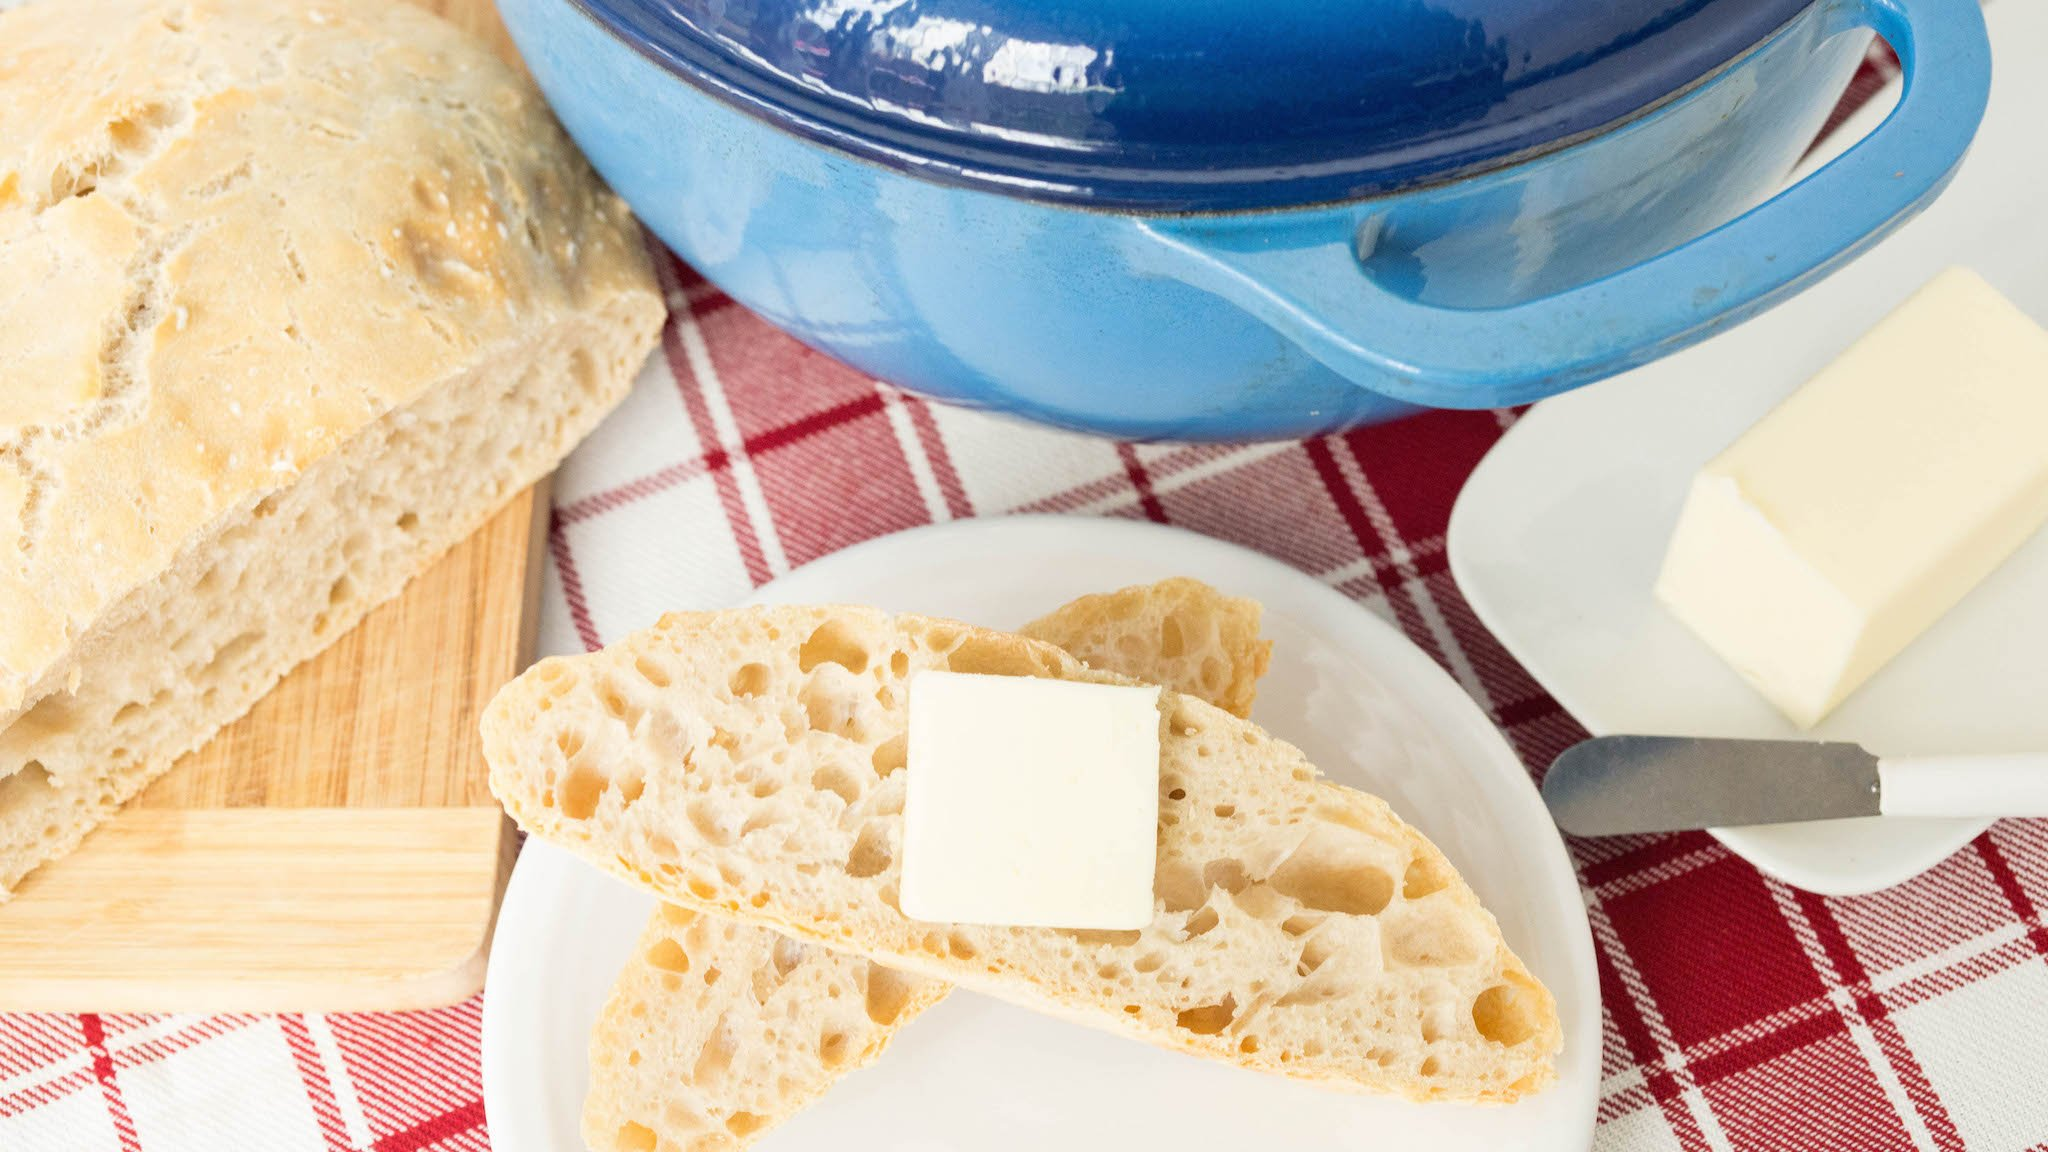 Quick & easy bread baked inside a dutch oven. Just 4 ingredients!